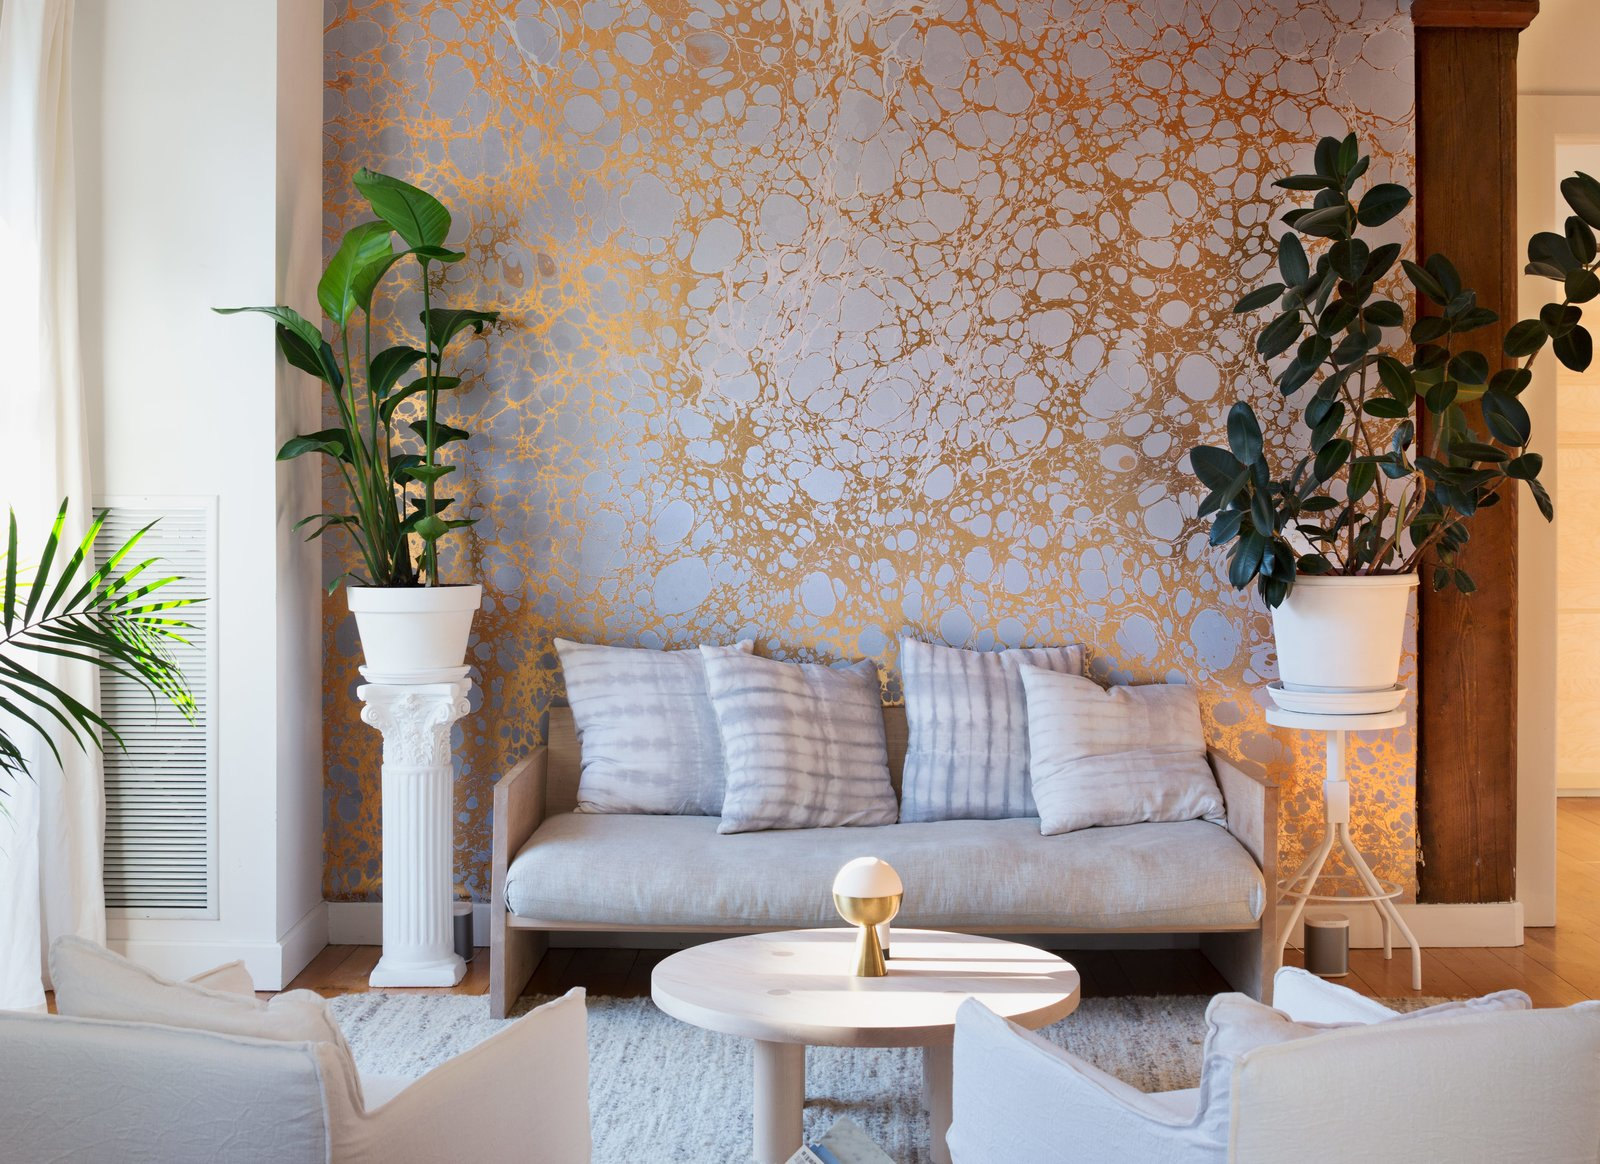 ... Loft, a Creative Couple Brings Their Wallpaper Brand to Life - Dwell